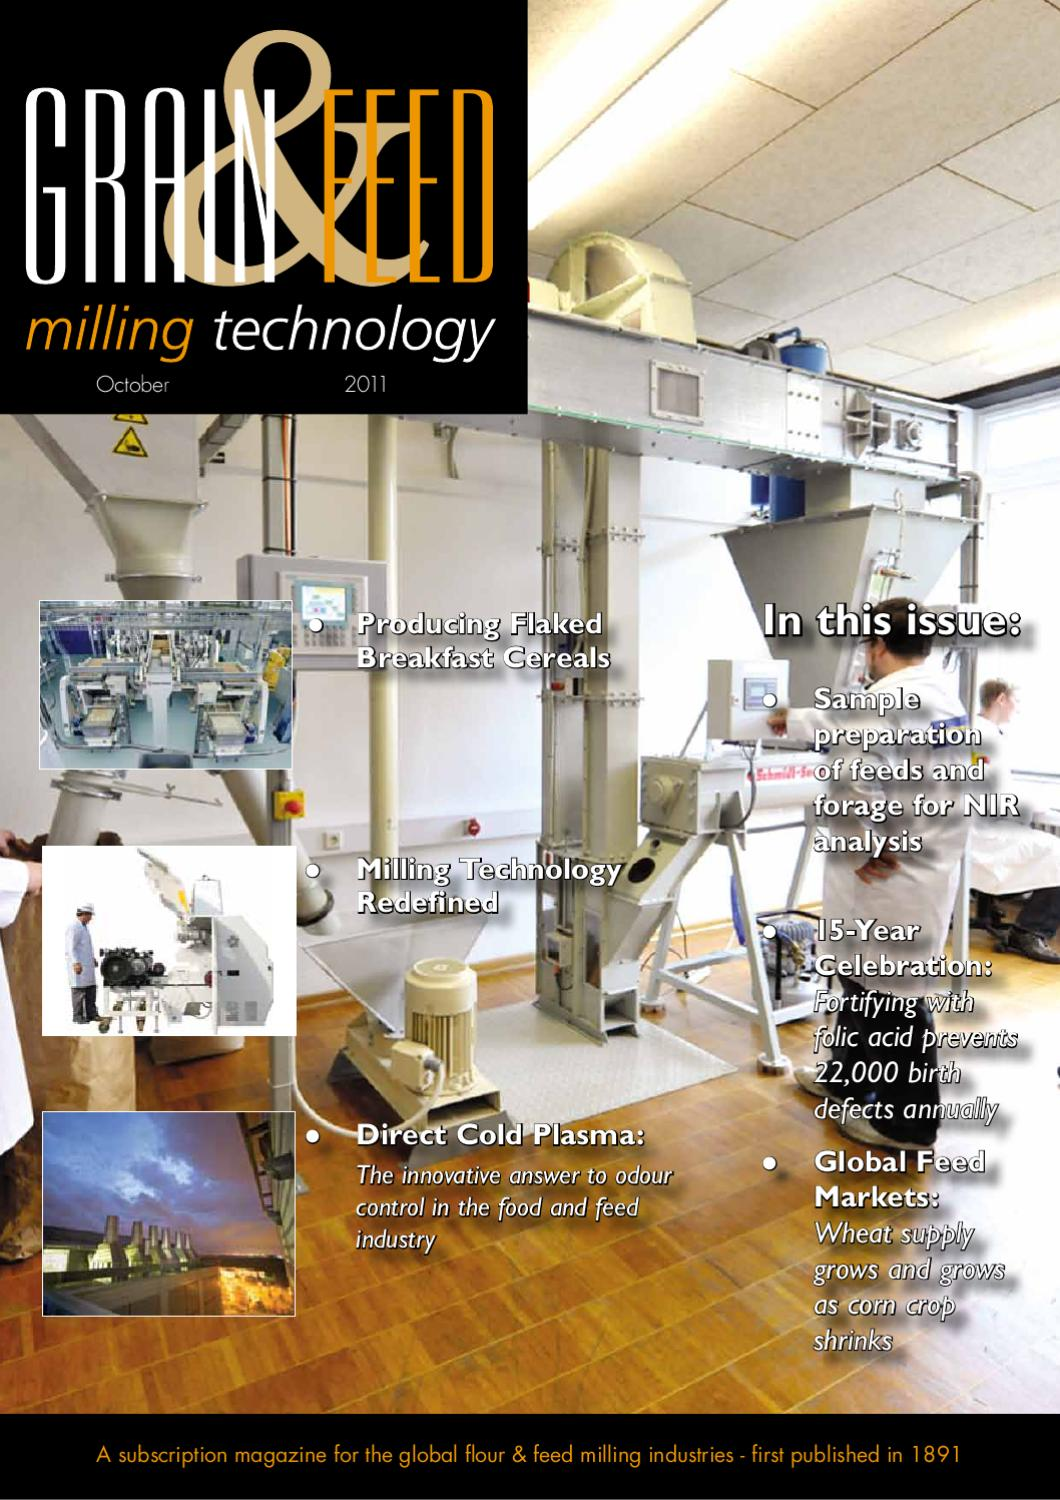 Sep Oct 11 Grain Feed Milling Technology By Perendale May Redefine Printed Circuit Board Manufacturing Recycling Publishers Issuu